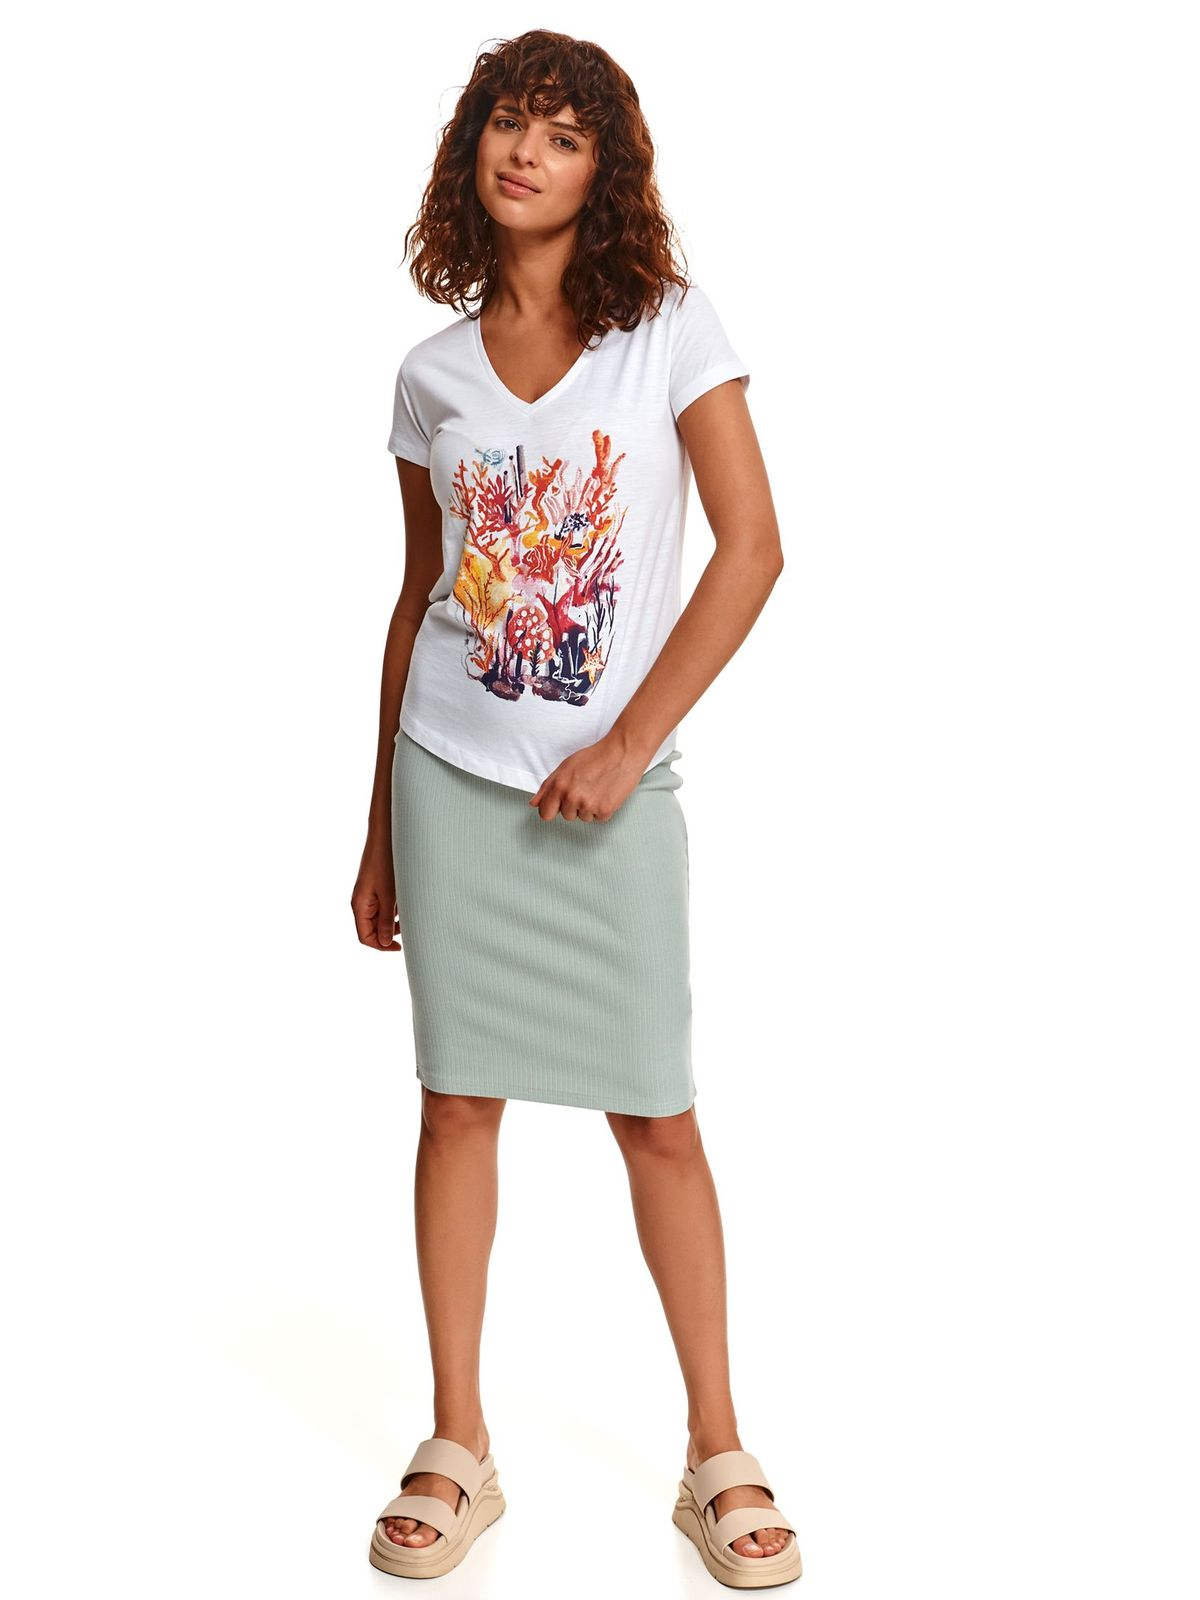 White t-shirt loose fit cotton with graphic details